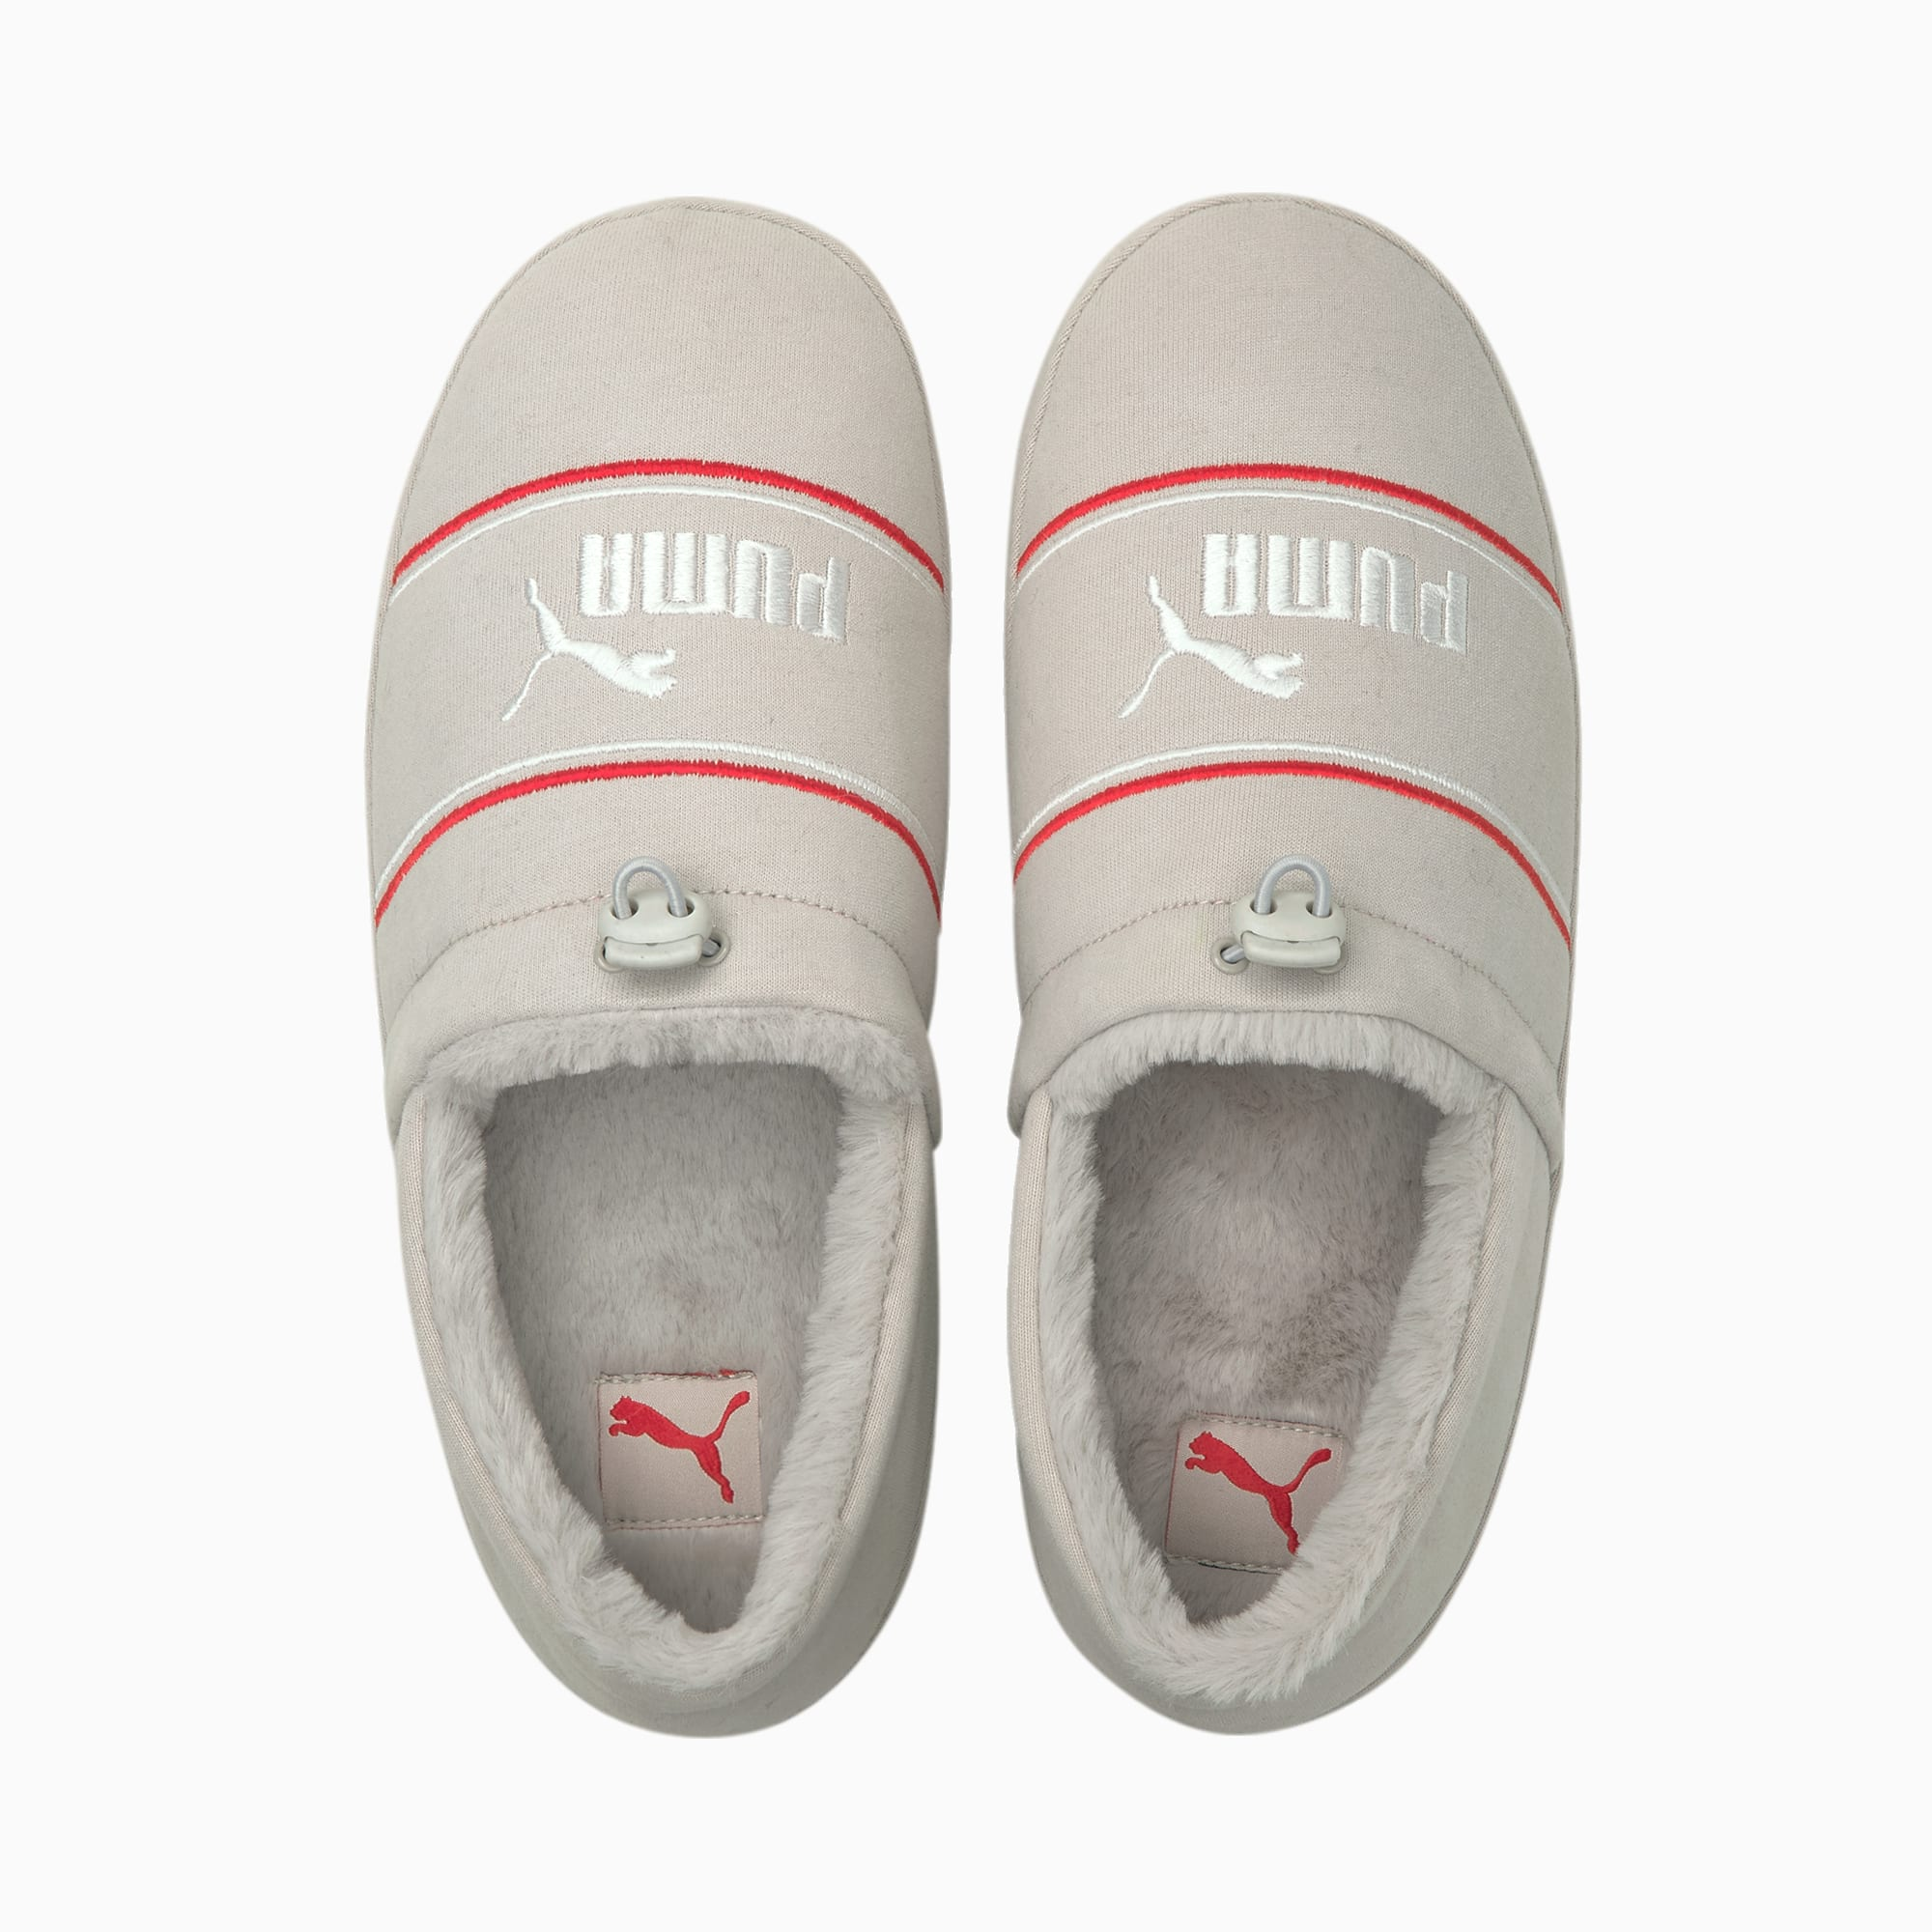 Tuff Mocc Jersey Slippers